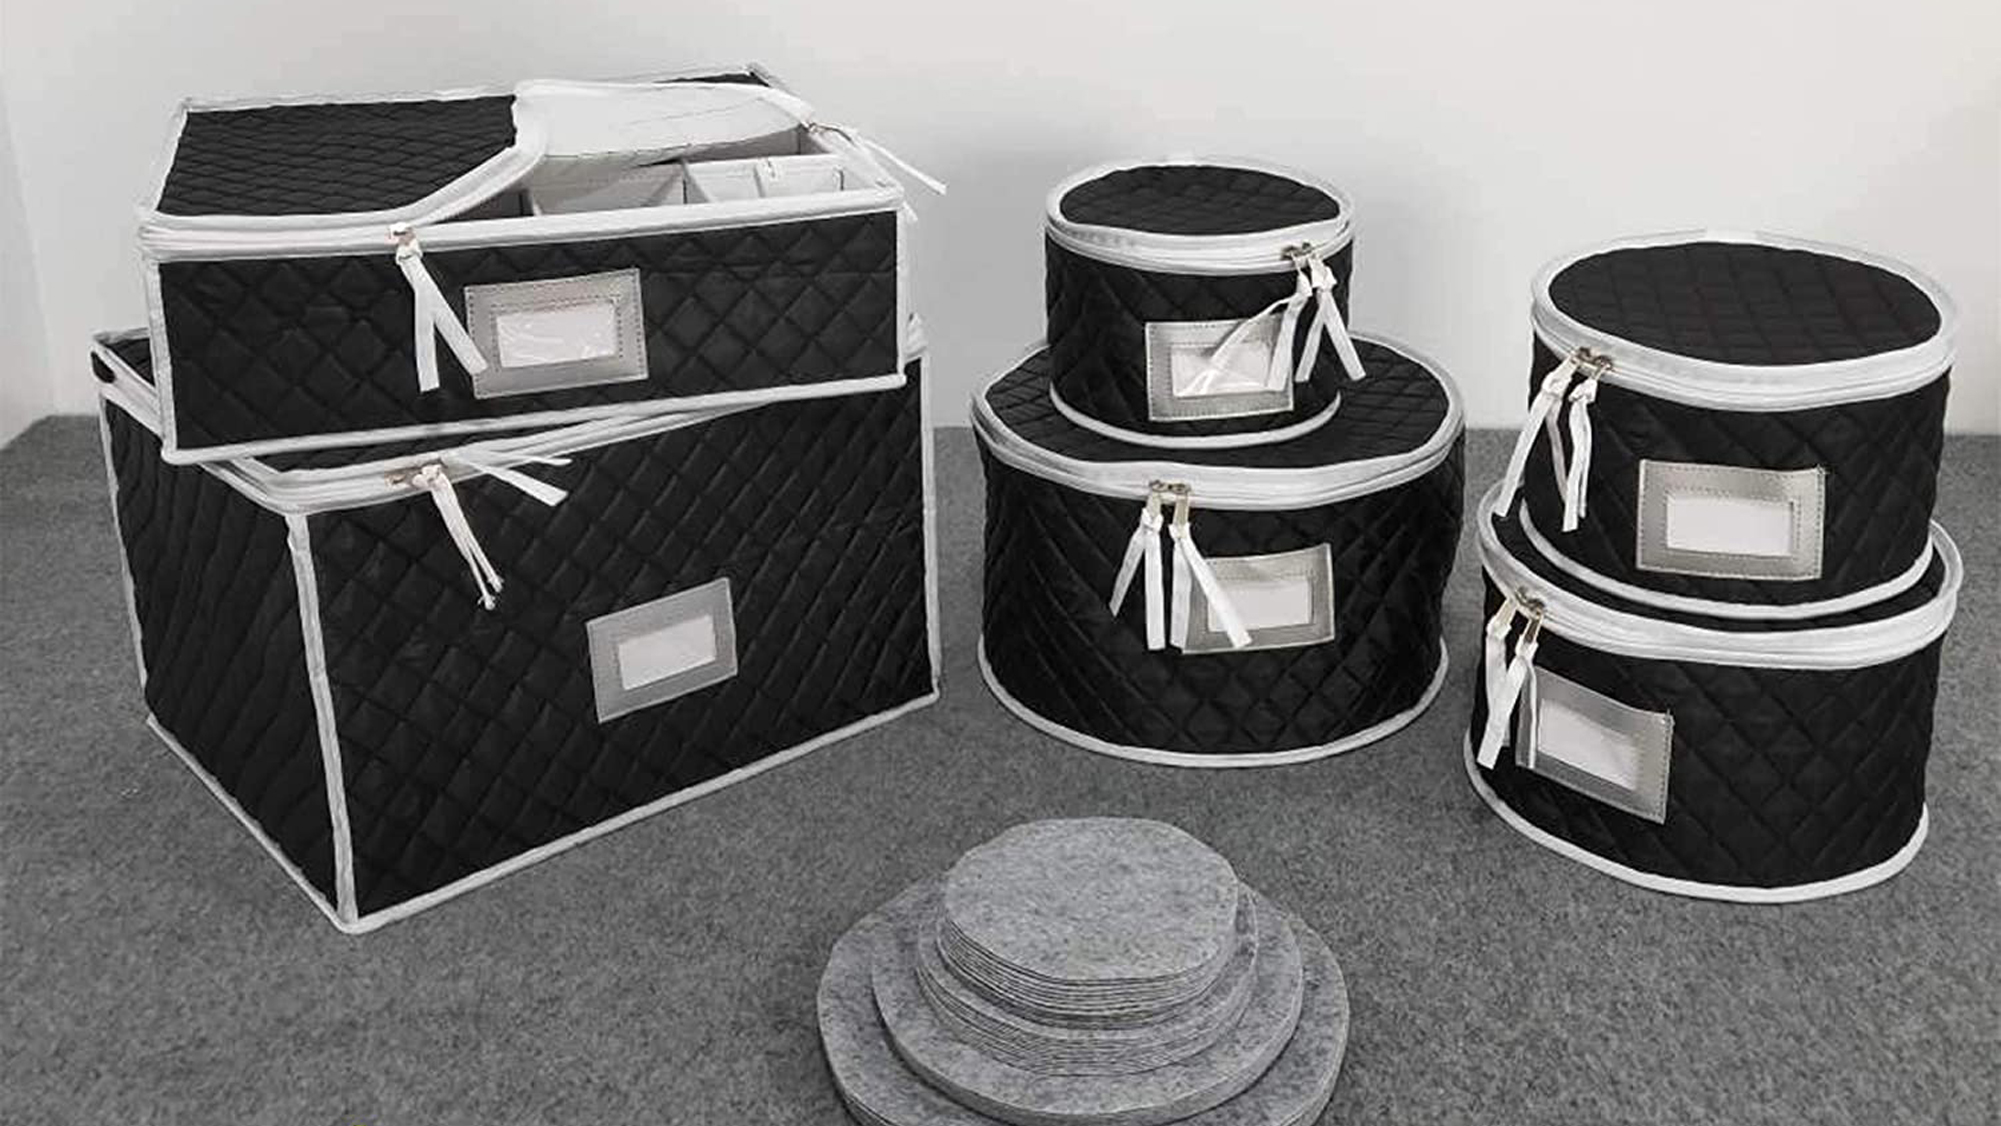 Complete Dinnerware Storage Set #1 Best Protection for Storing or Transporting